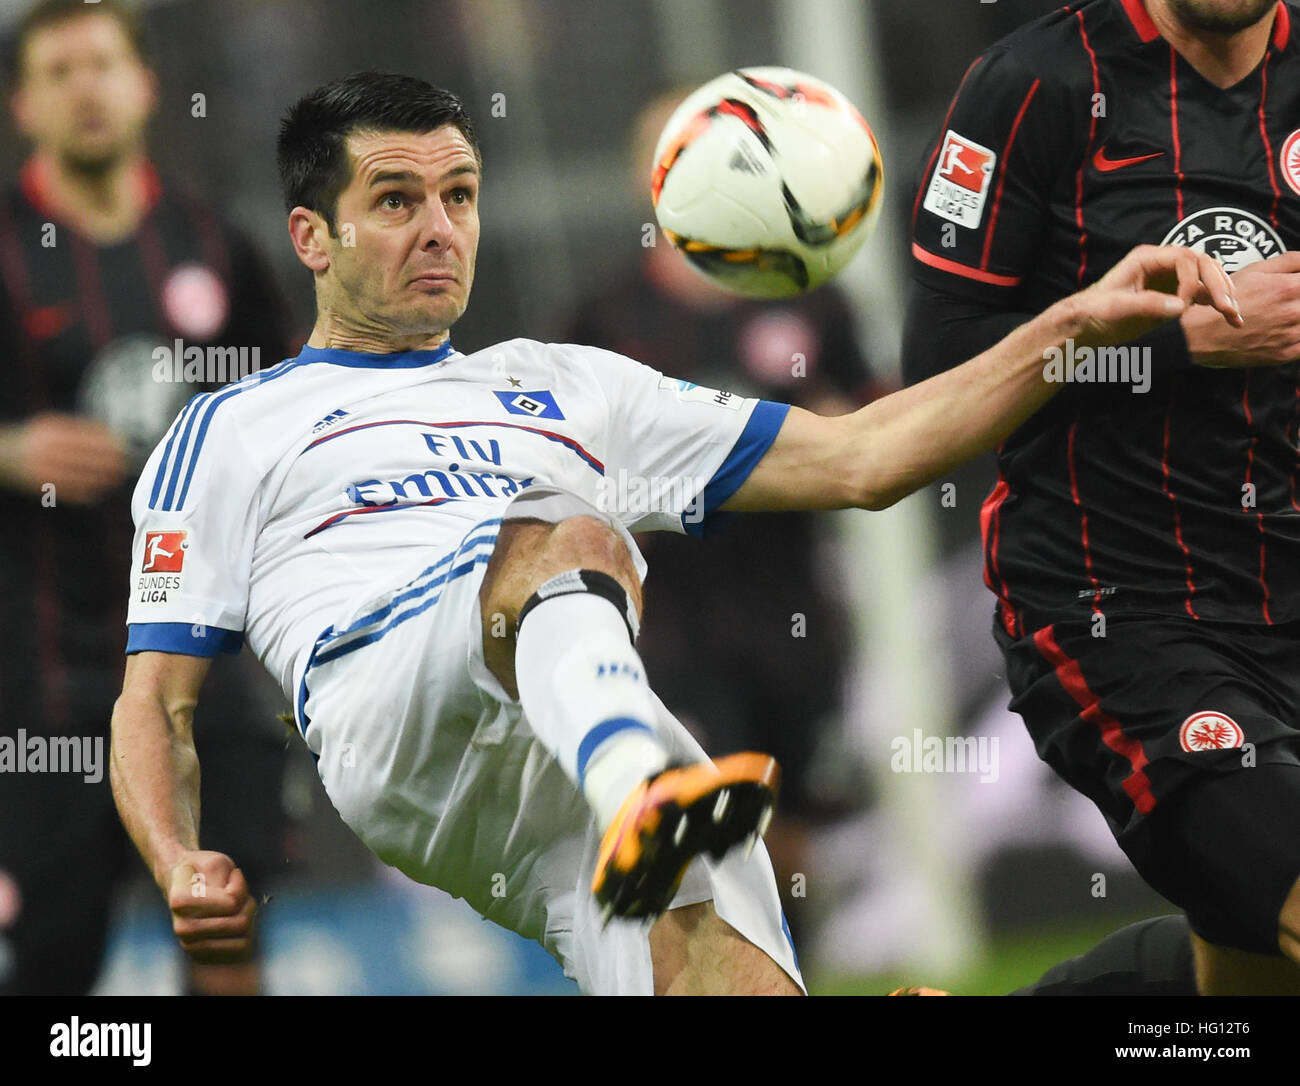 ARCHIVE - An archive image dated 19 Febuary 2016 shows Hamburg's Emir Spahic in action during a German Bundesliga - Stock Image